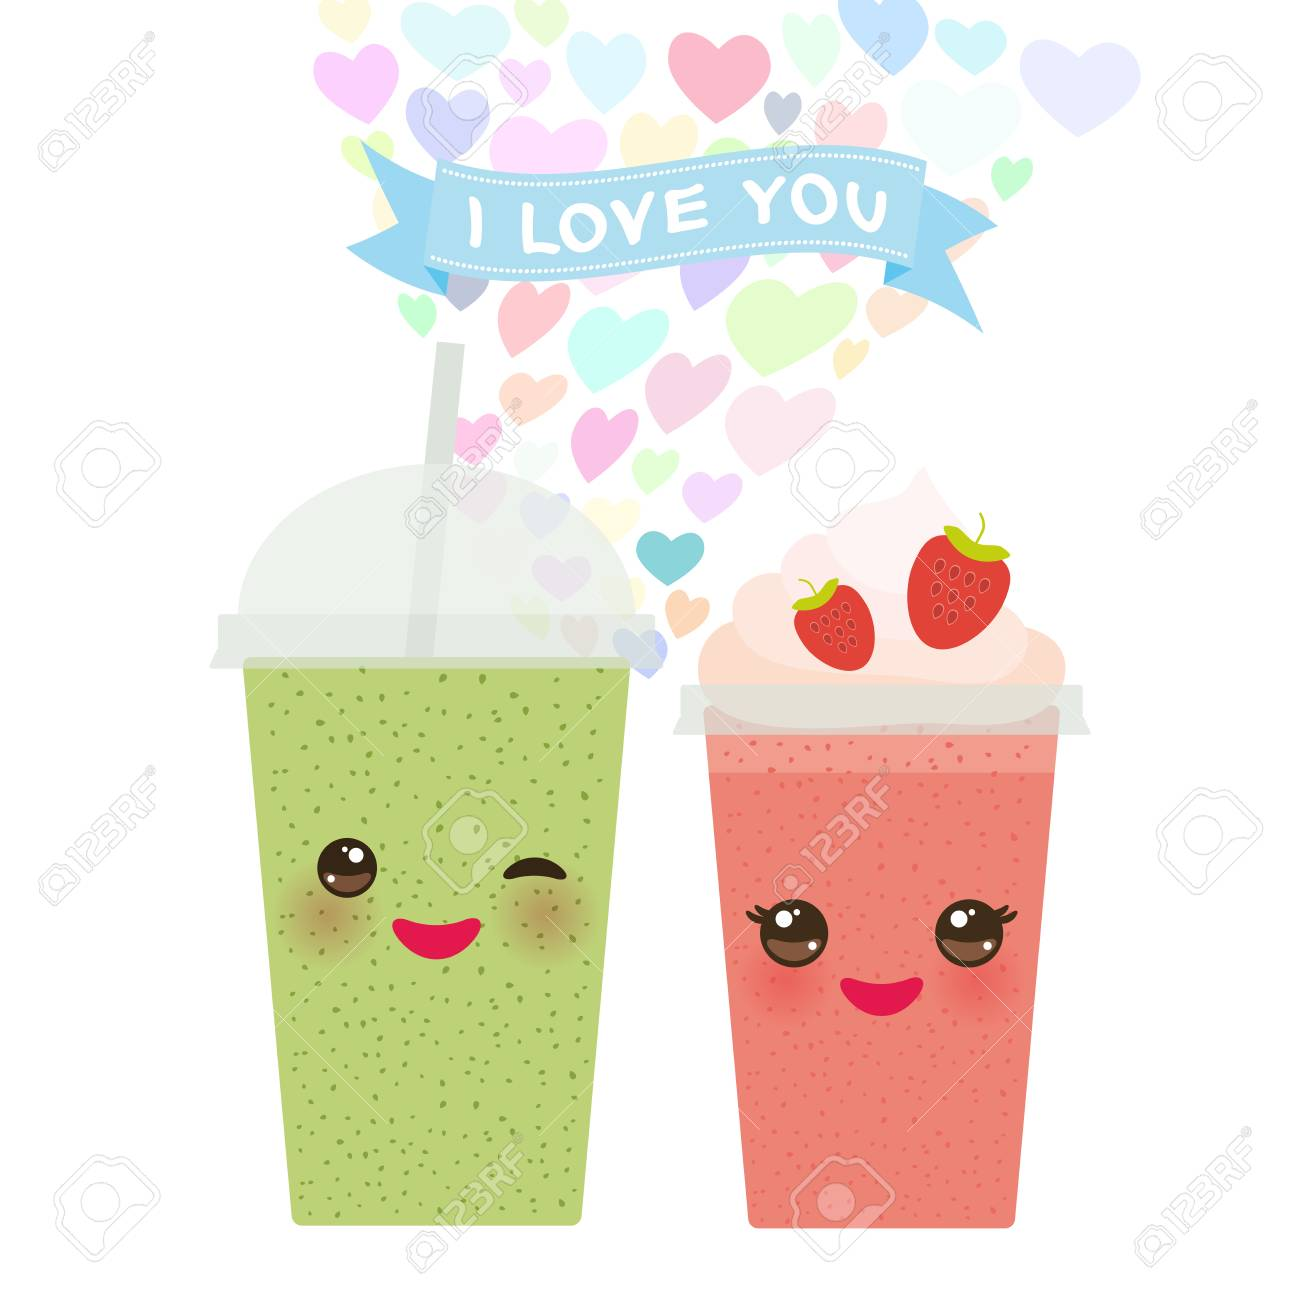 valentines day card design with kawaii strawberry kiwi take out smoothie transparent plastic cup with